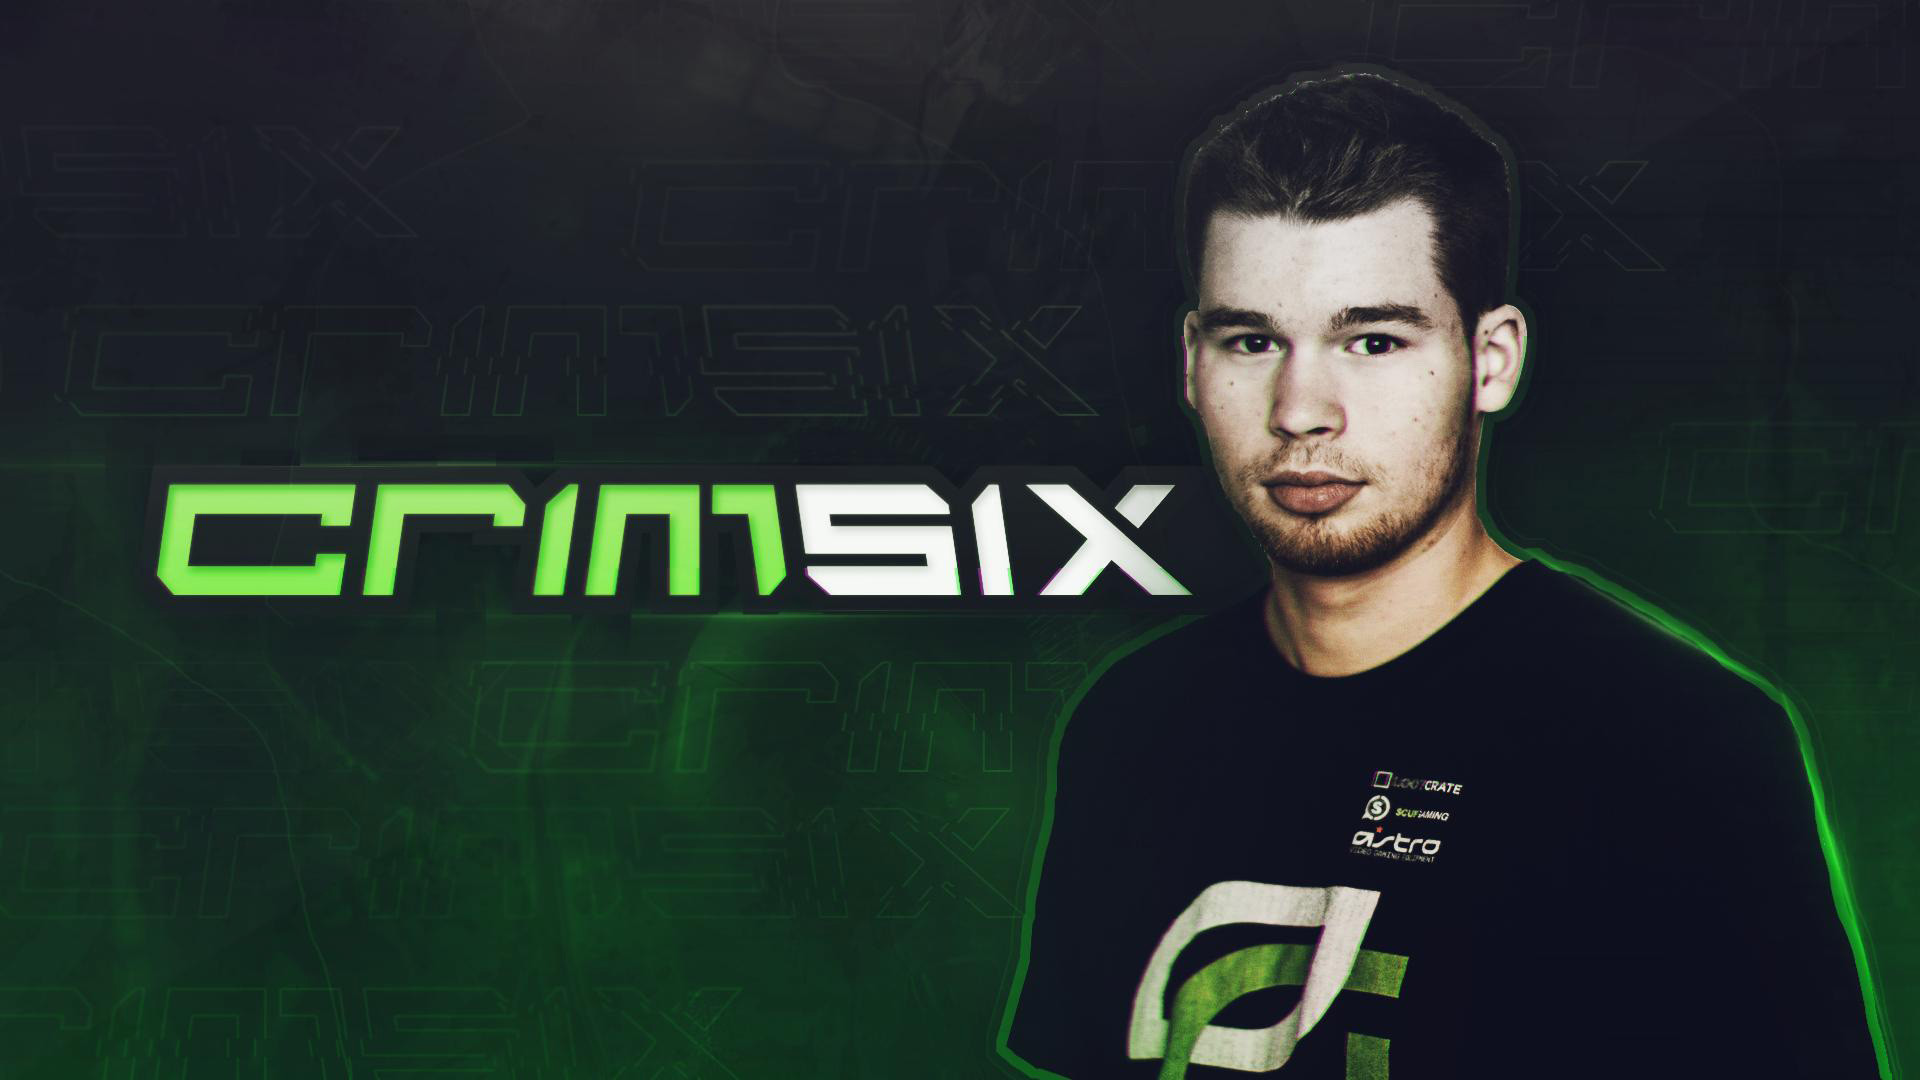 1920x1080 Crimsix optic gaming.